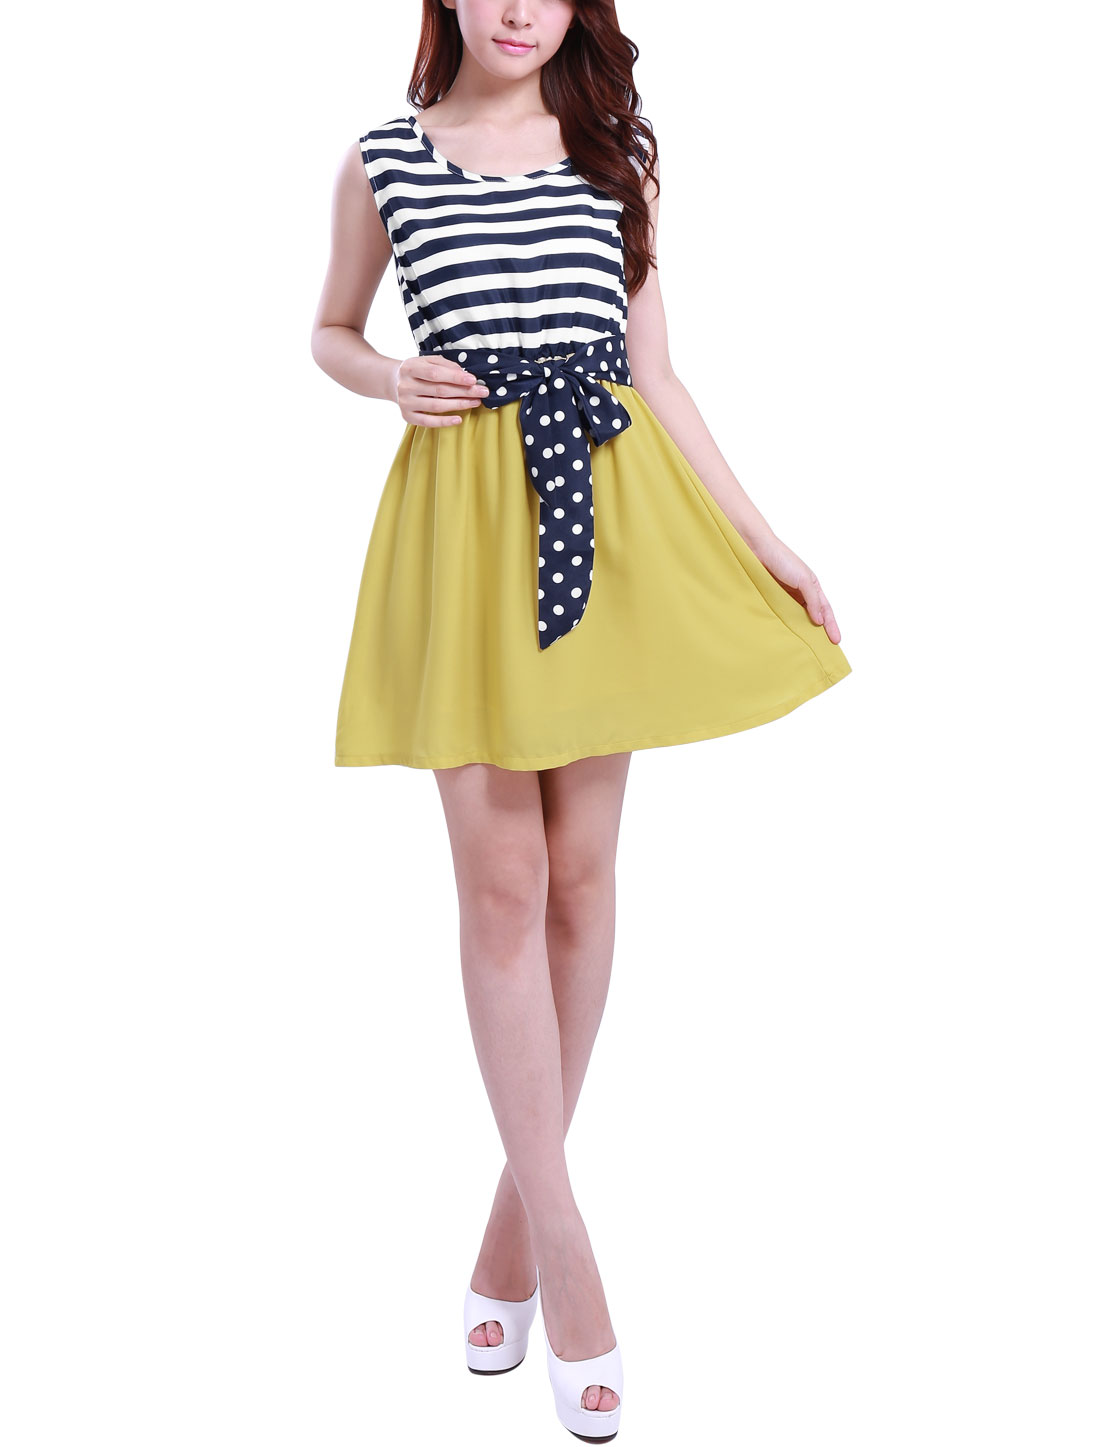 Woman Newly Scoop Neck Striped Design Dark Blue Yellow Mini Dress M